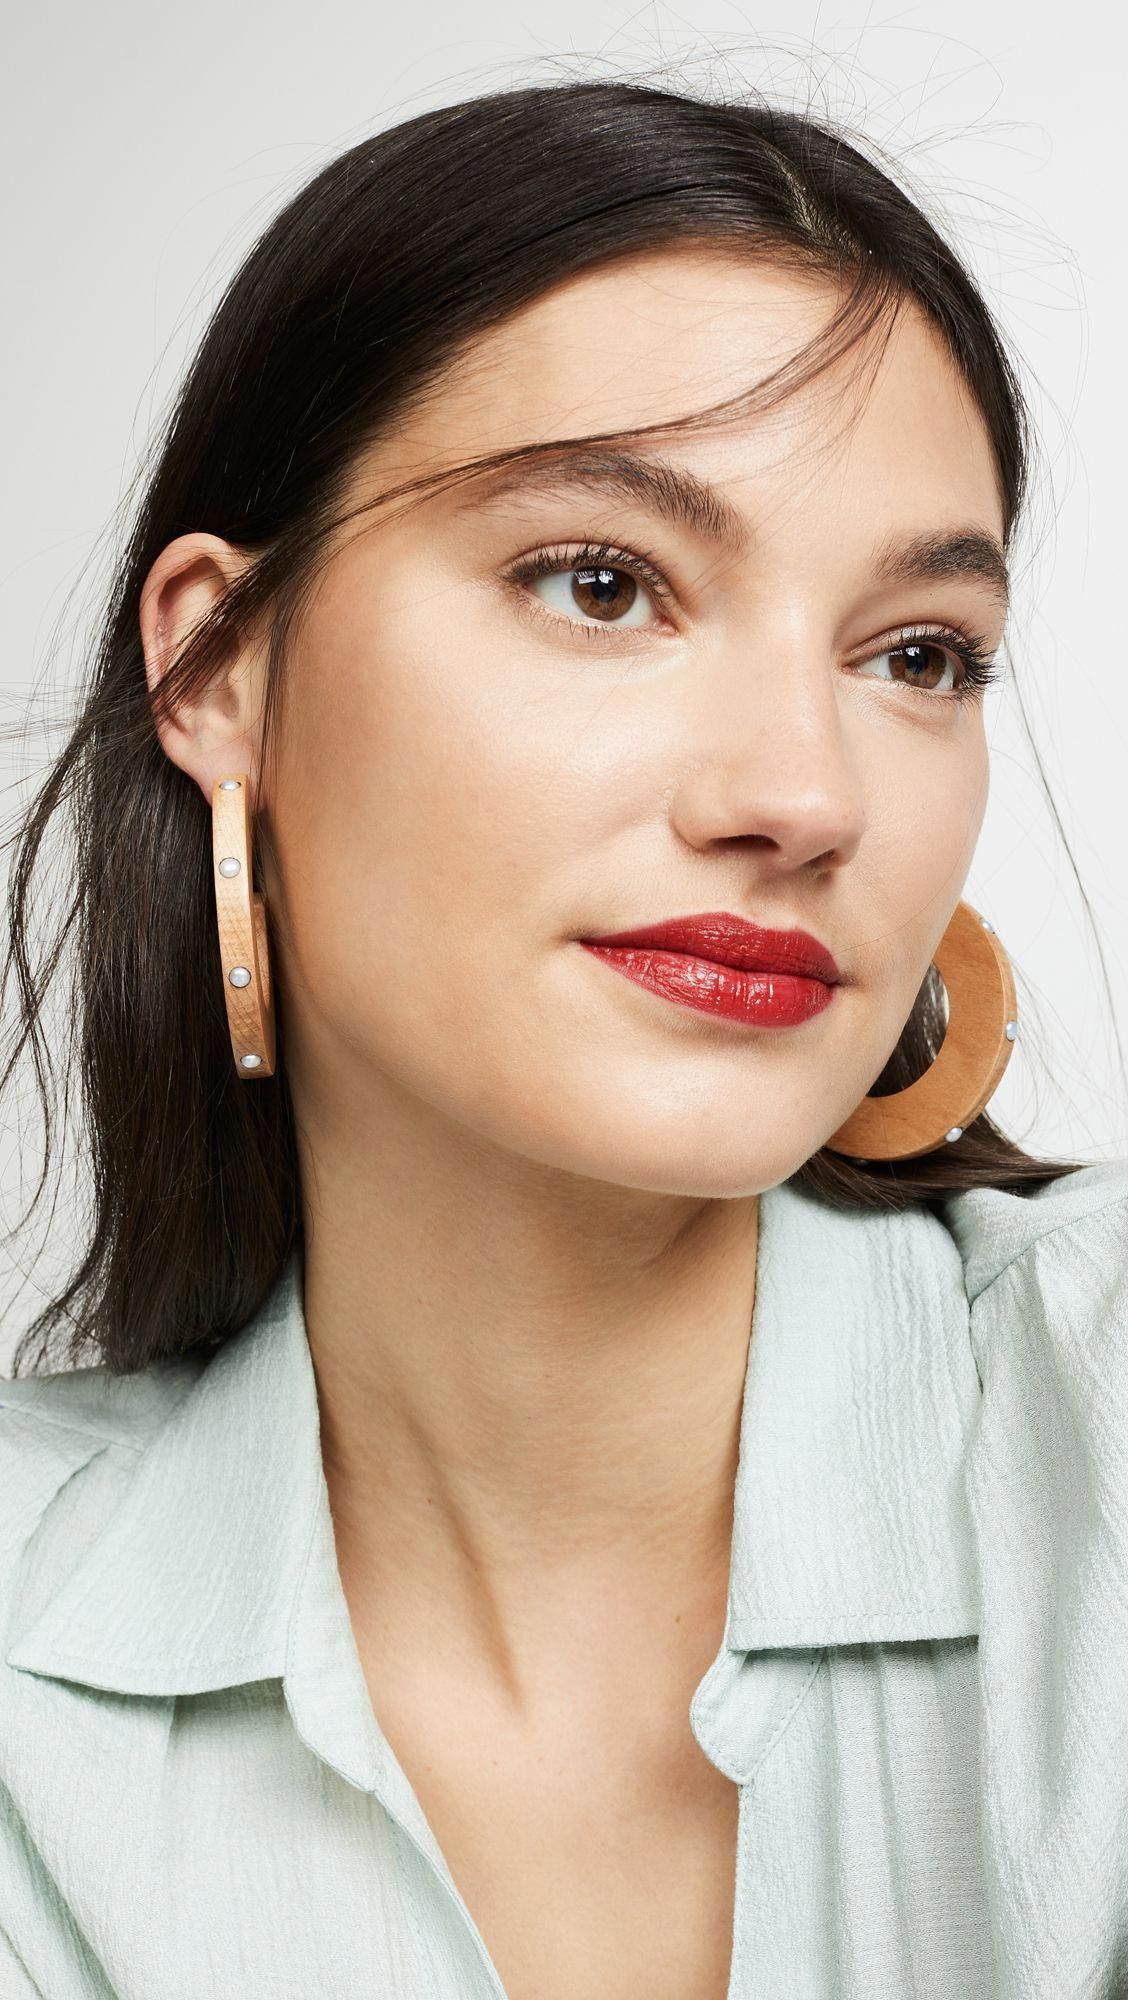 The prettiest makeup finish starts with the cleanest skin